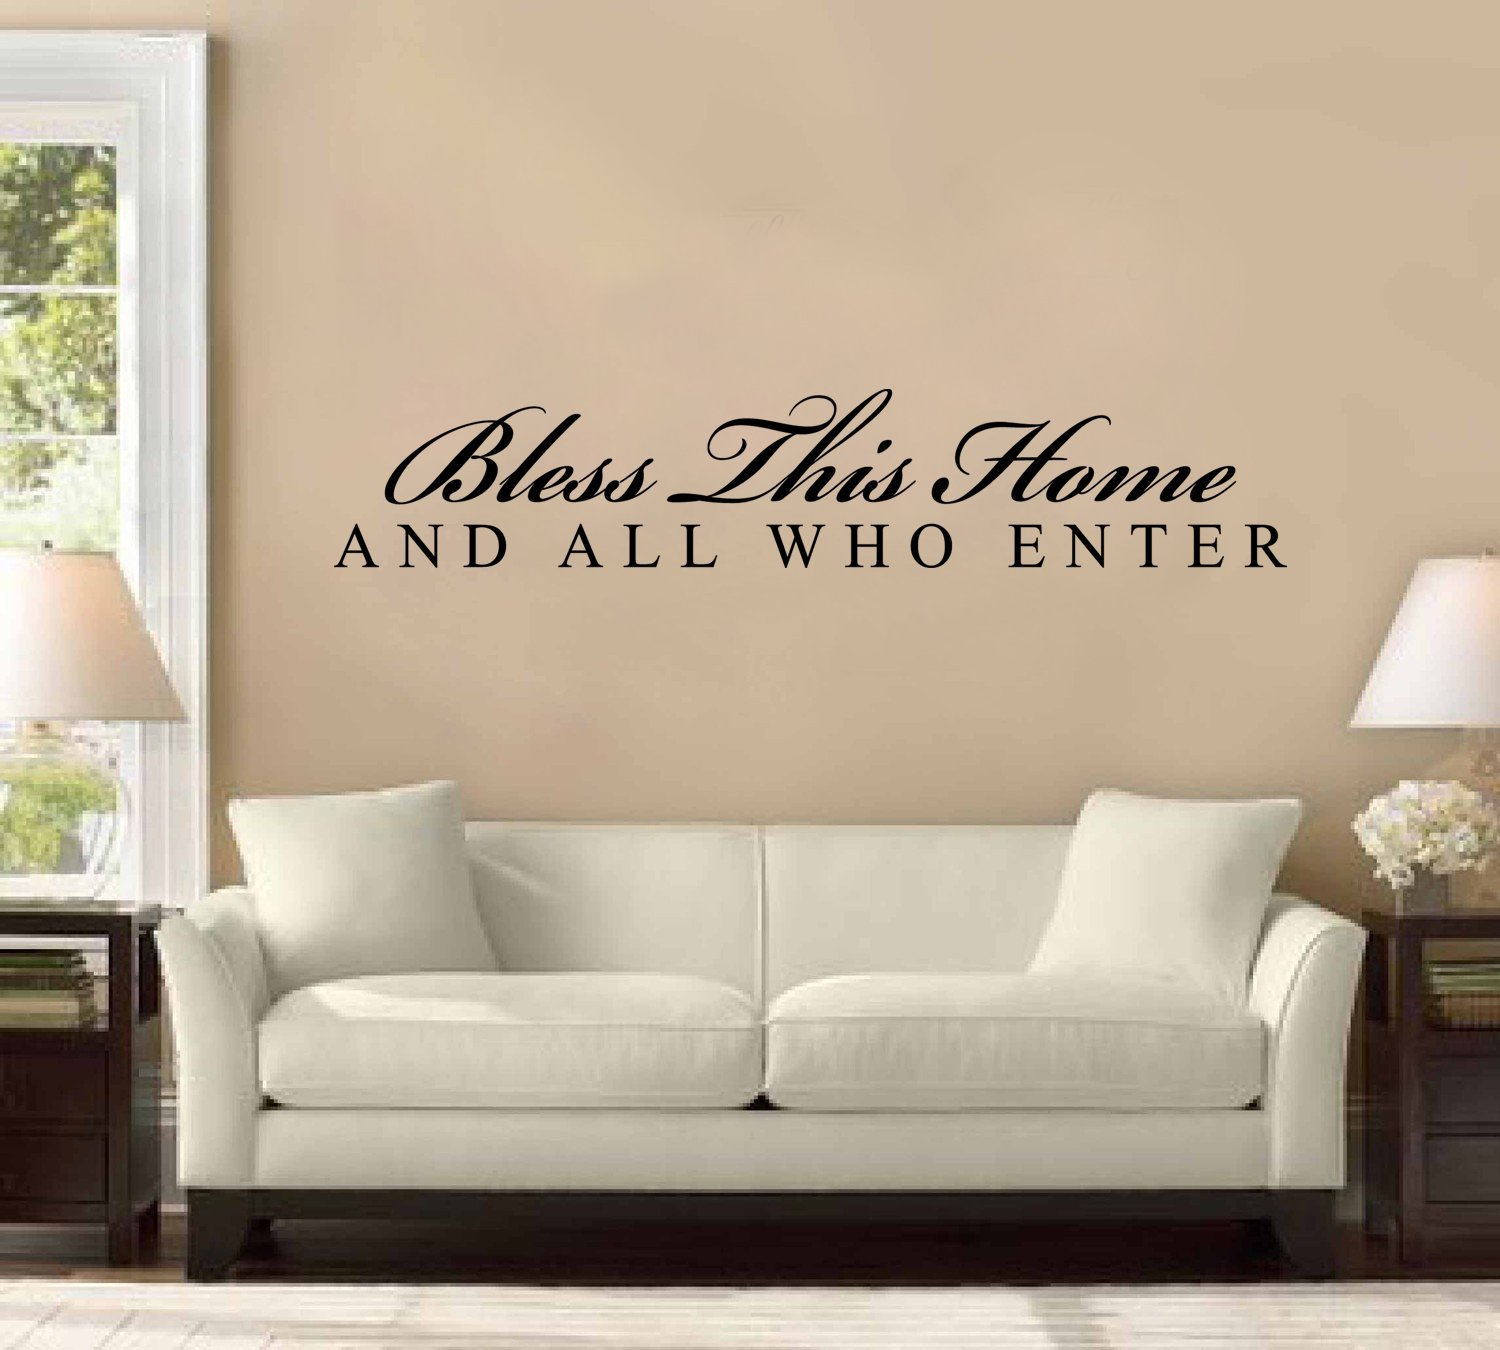 Bless This House And All Who Enter Large Wall Decal Sticker - Wall stickers art